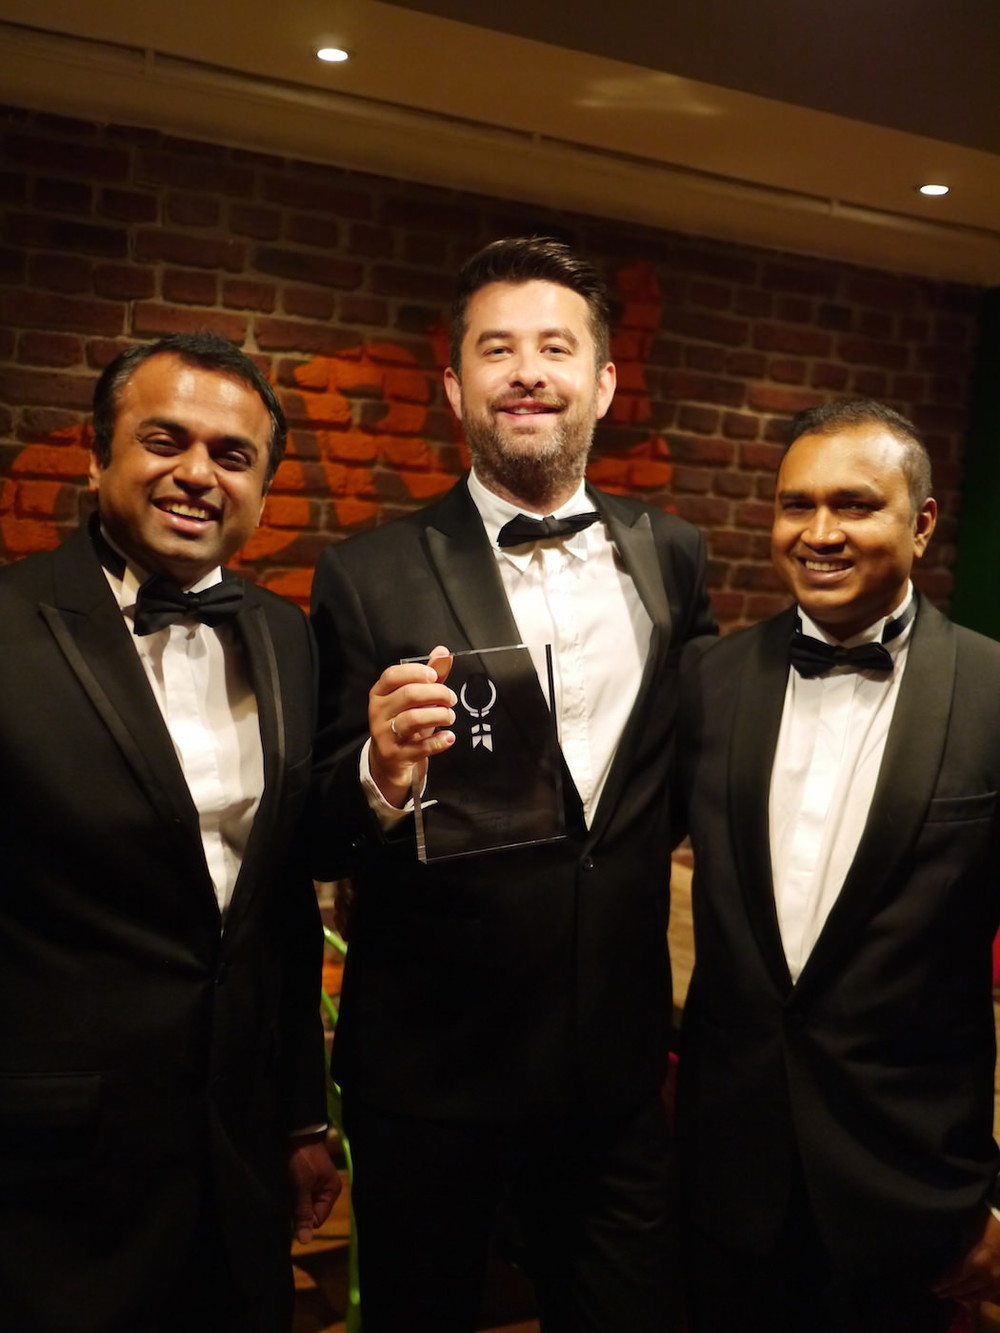 (L to R): Co-owners Kanthi Thamma & Euan Sey, plus Head Chef Gouranga Bera pose with the award